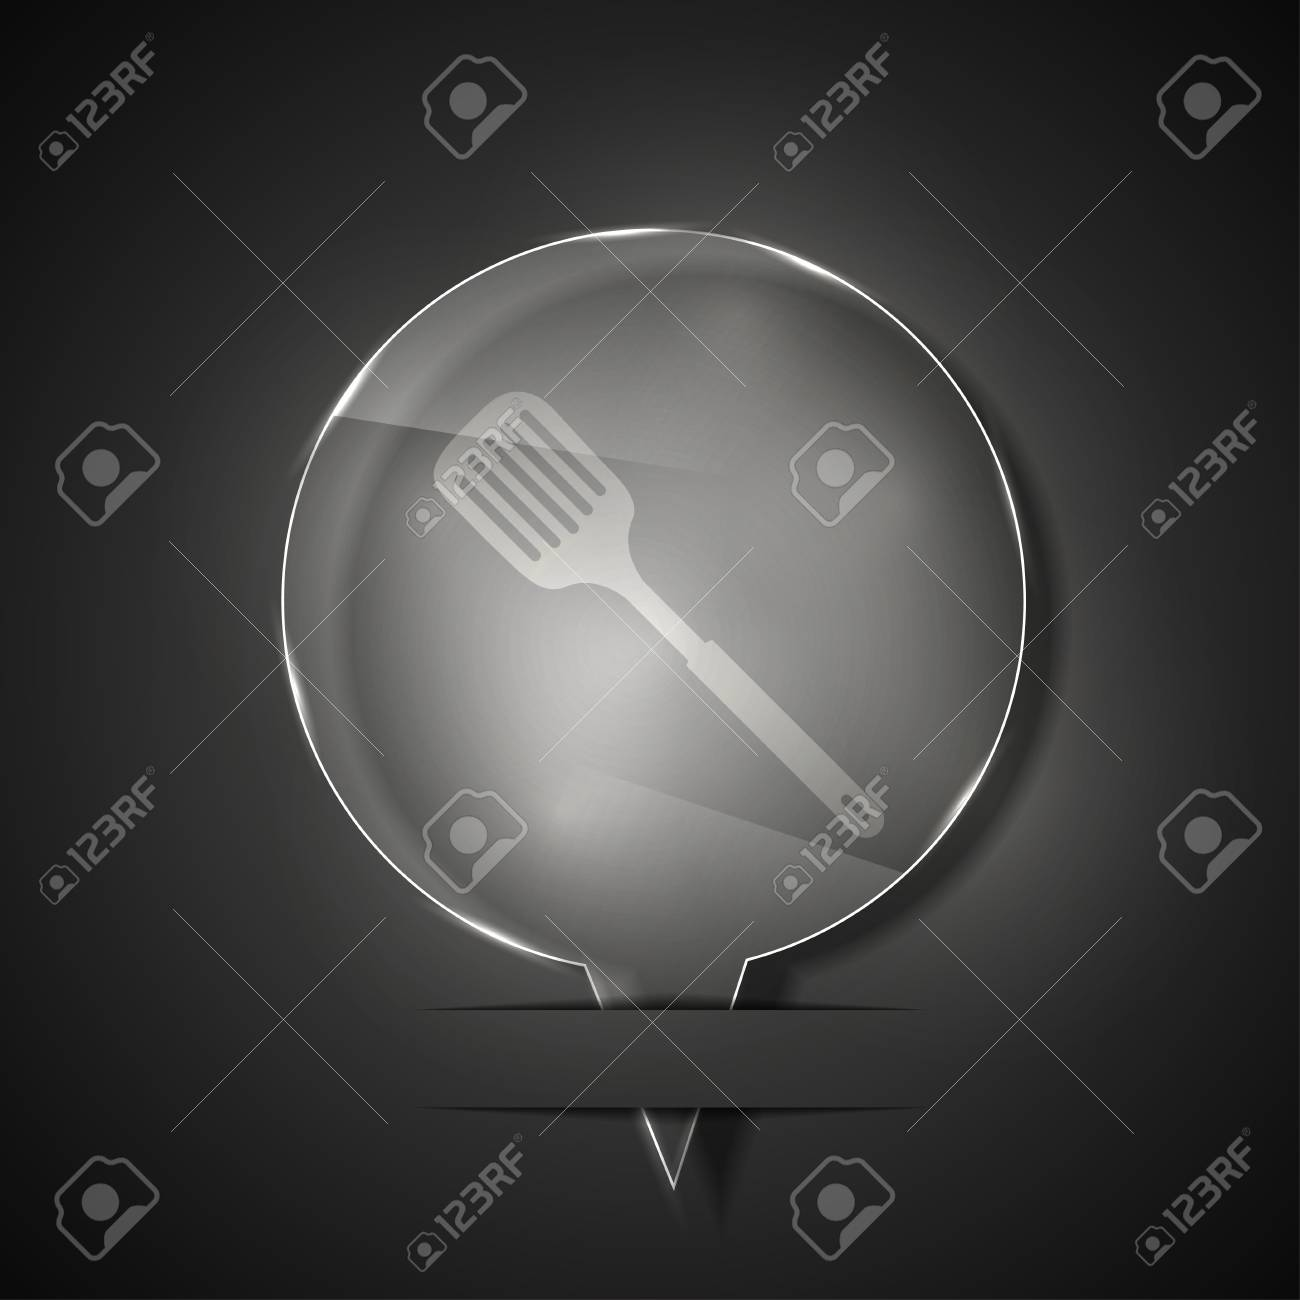 glass slotted kitchen spoon icon on gray background. Stock Vector - 15145662